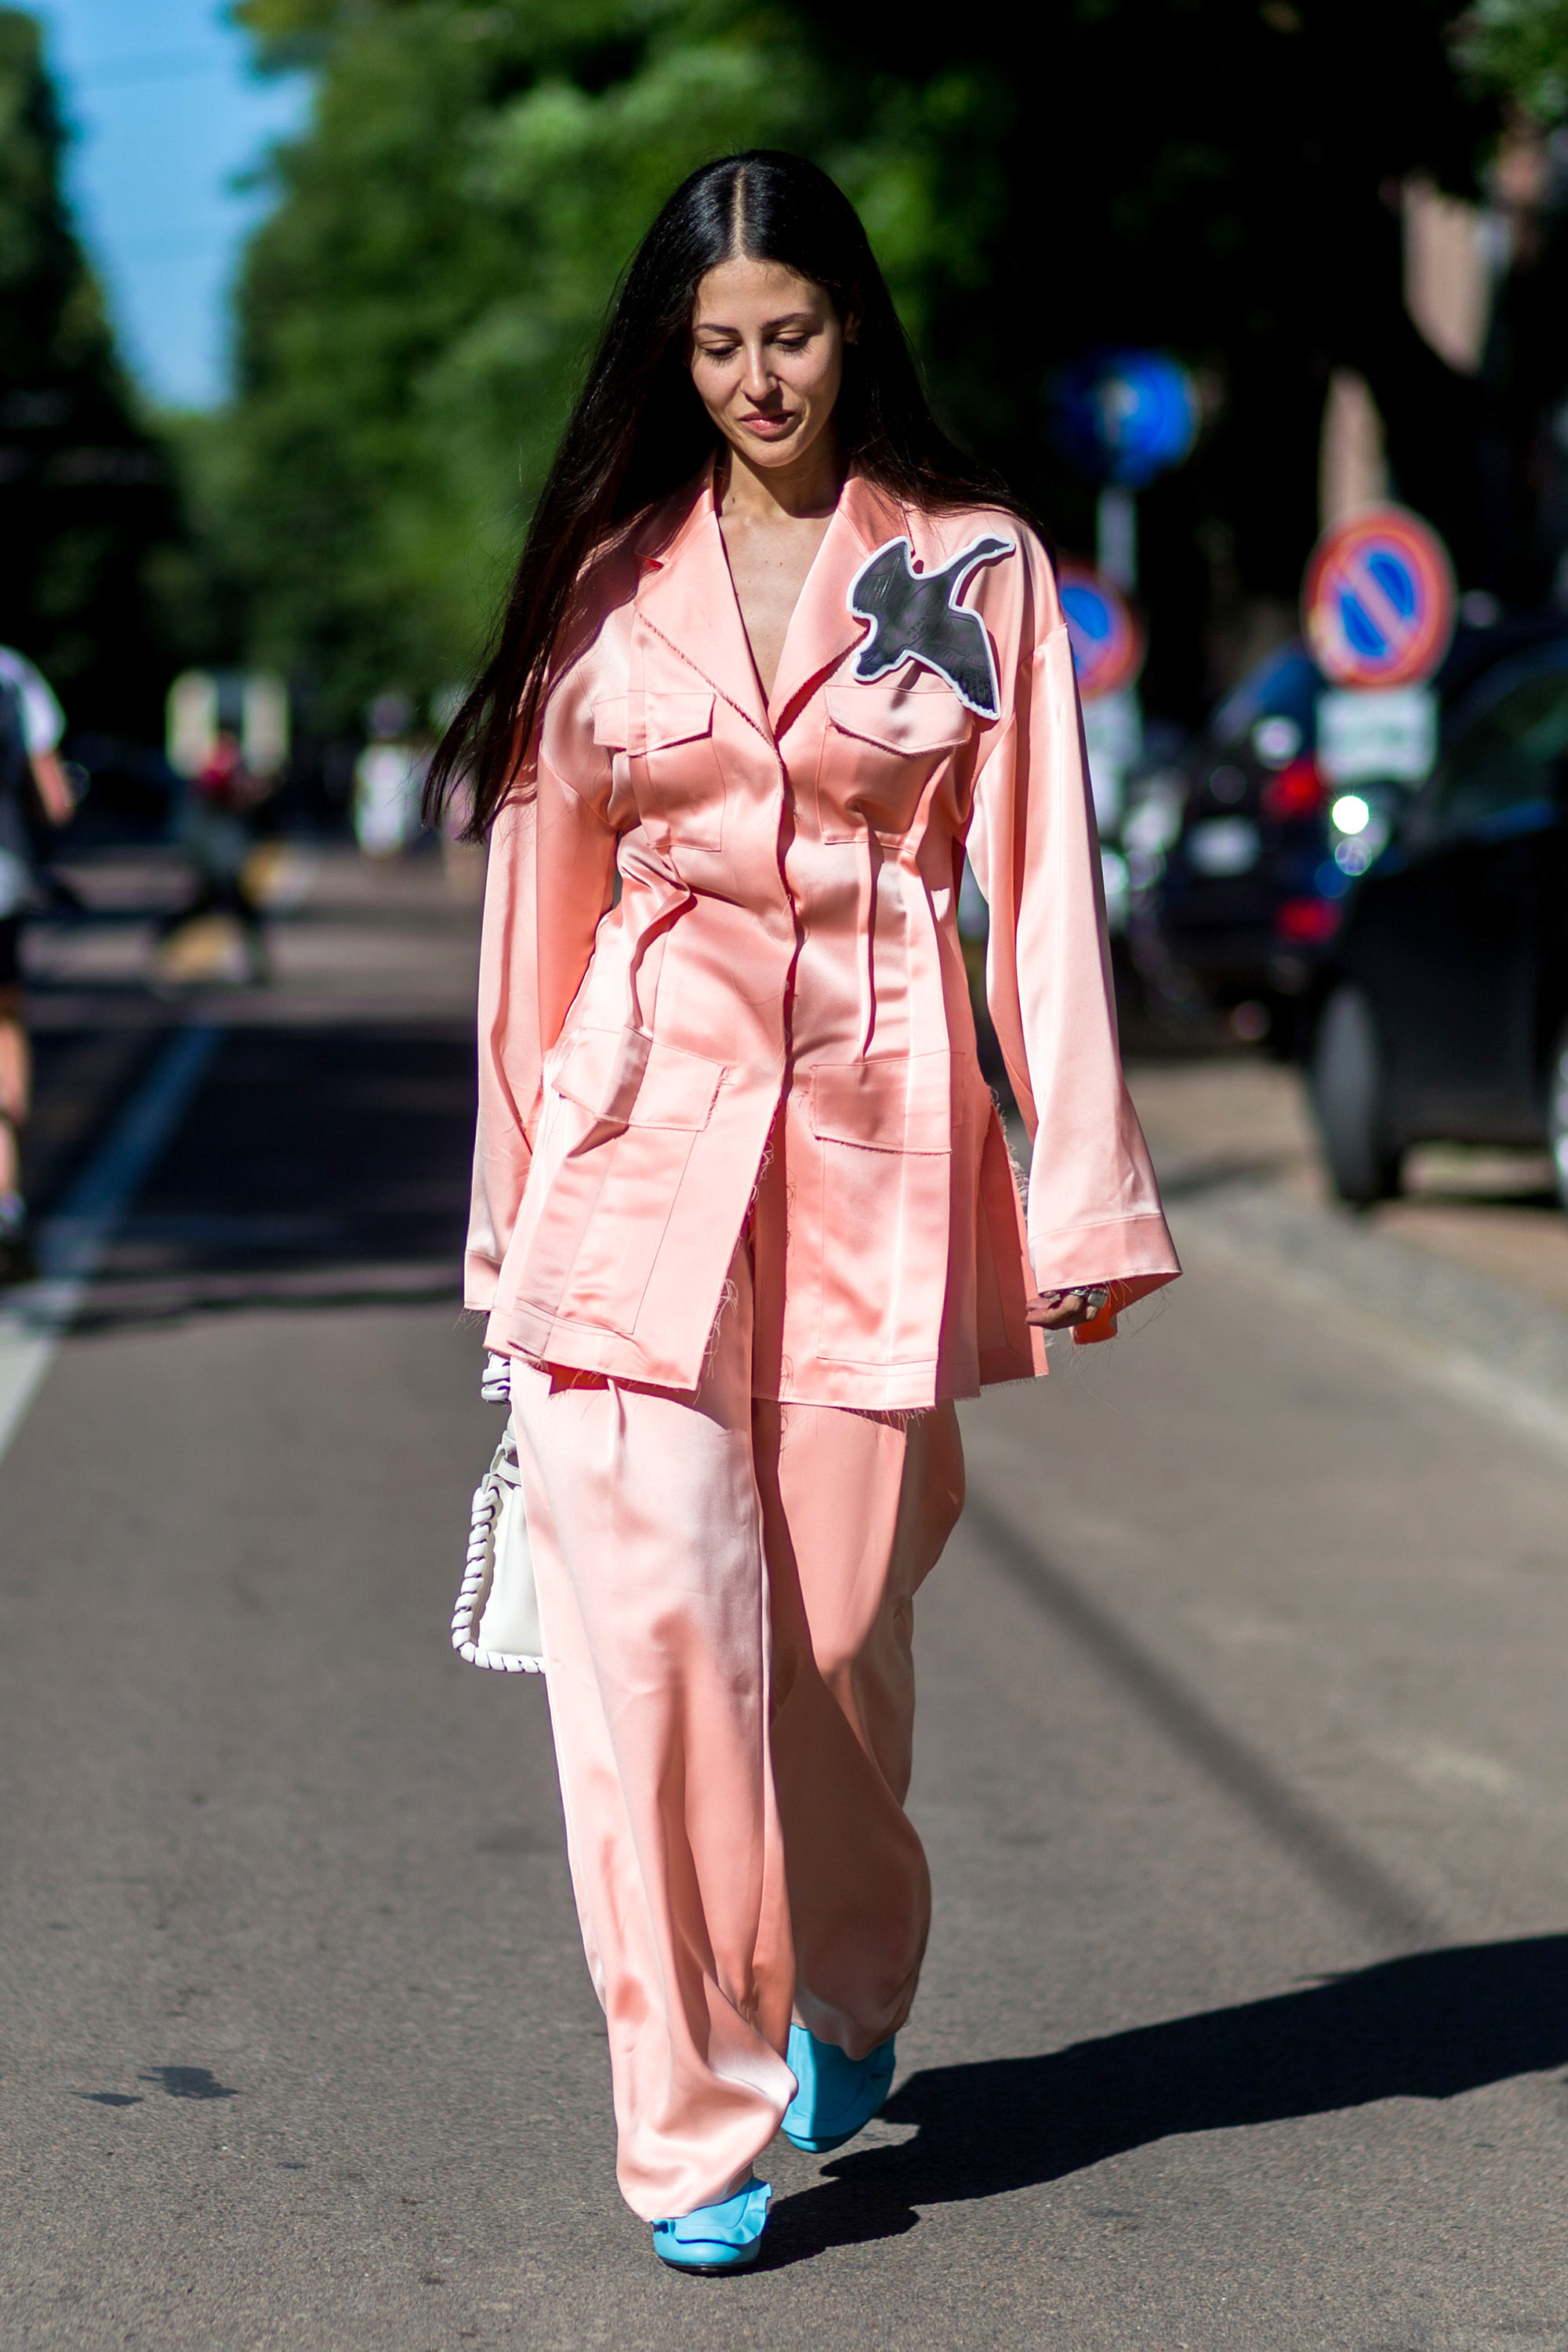 The Best Rosy Street Style Fashion Magazine Cometrend